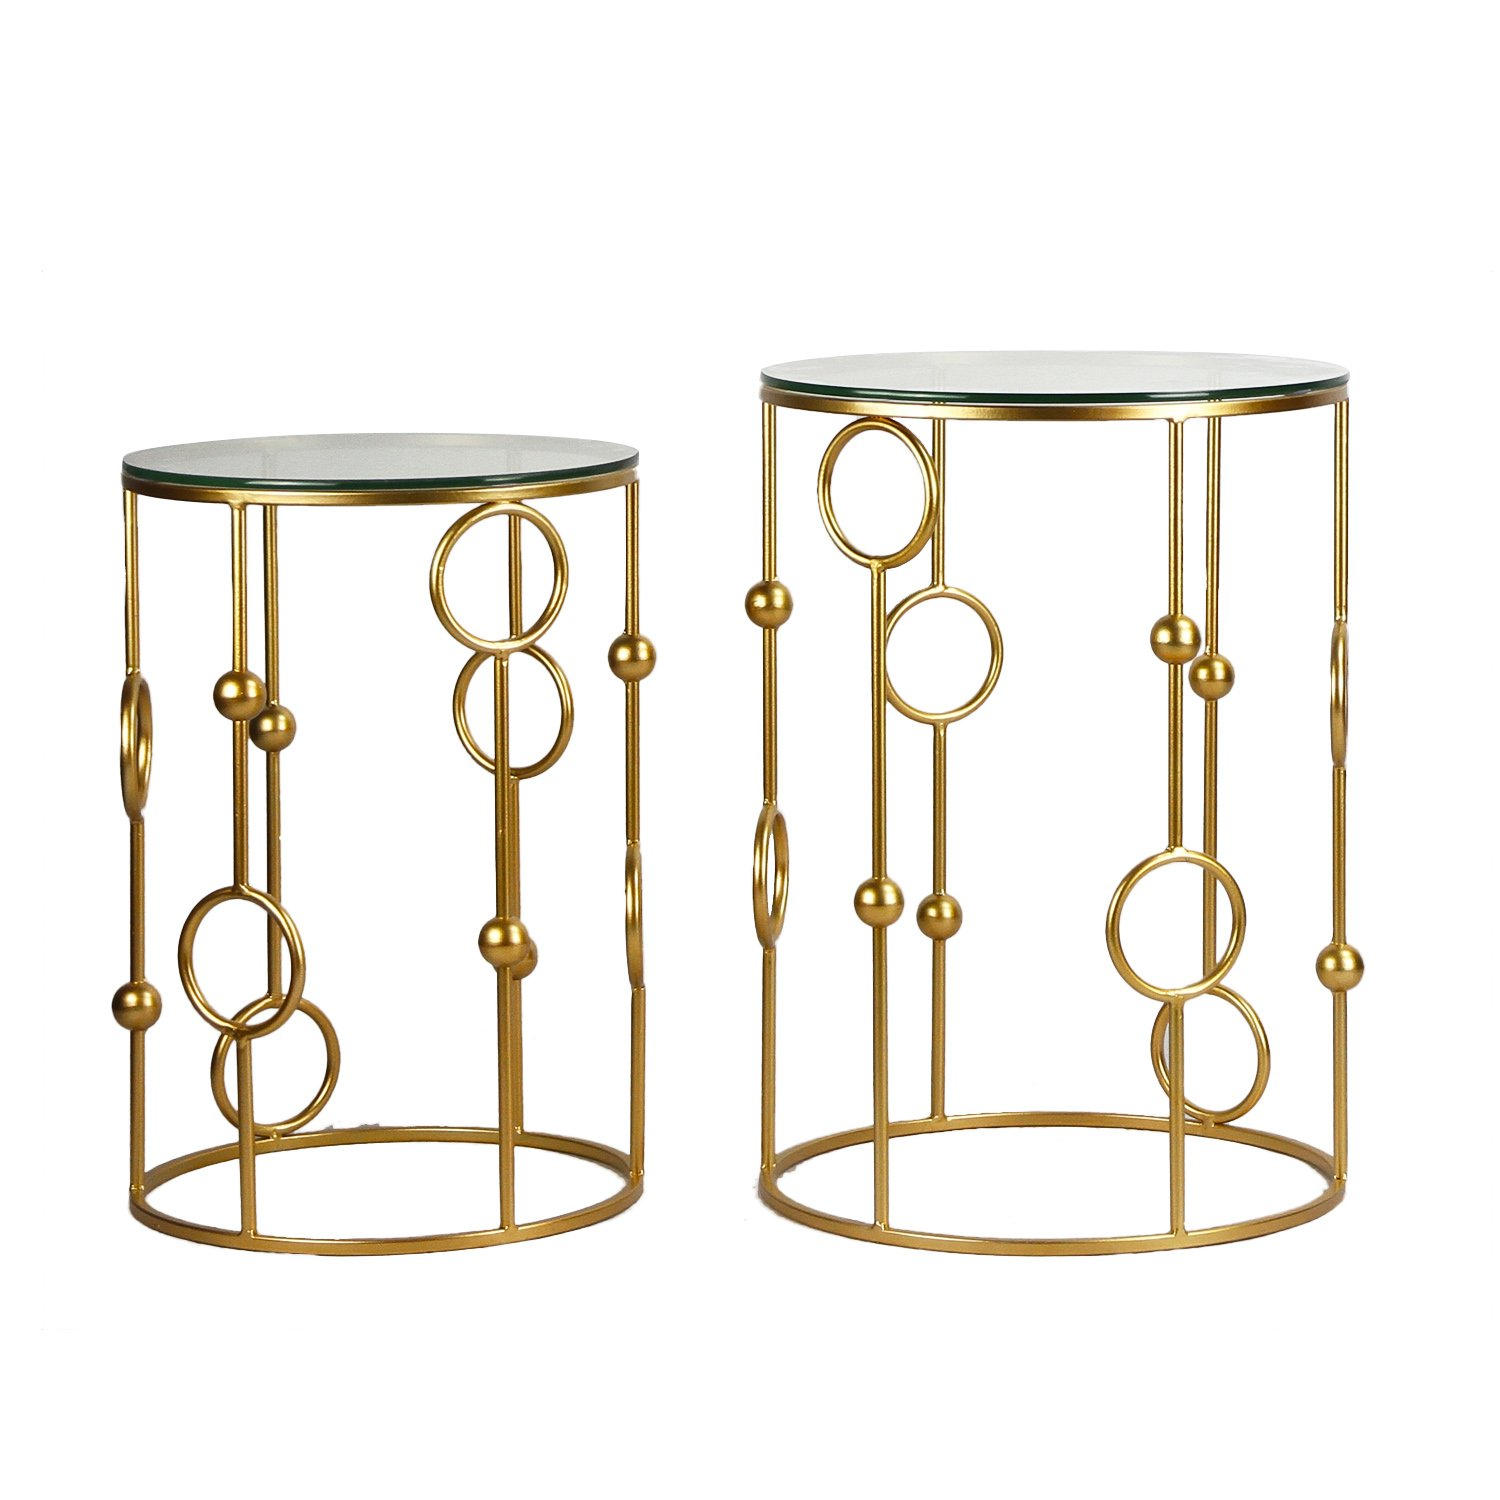 Adeco FT0063 Neting Accent, Decrorative Glass Top Side, End, Set of 2 Round Nesting Tables, Gold by Adeco